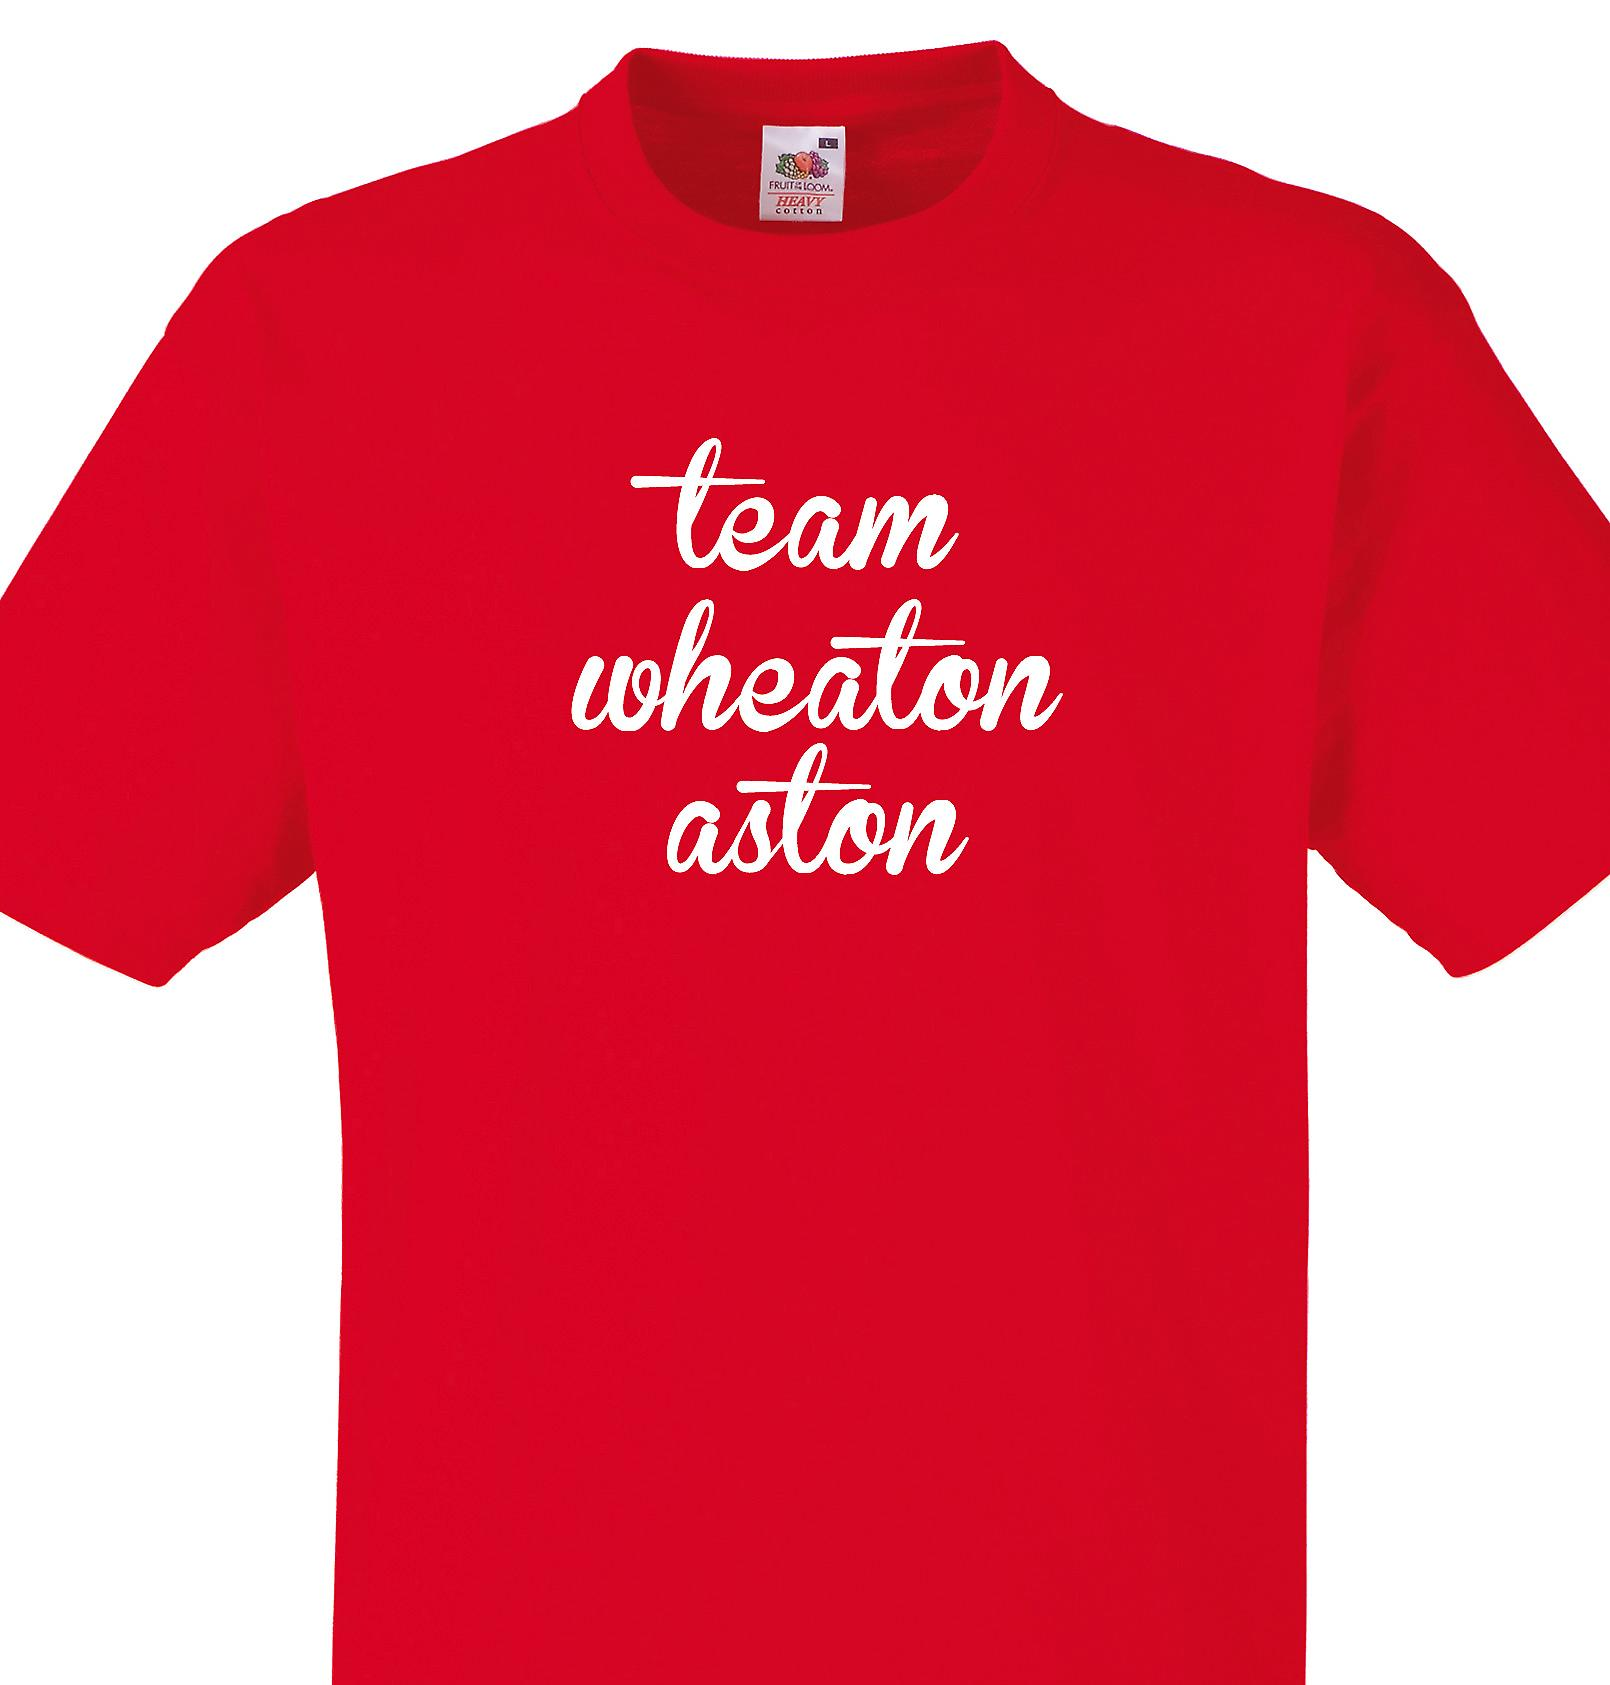 Team Wheaton aston Red T shirt